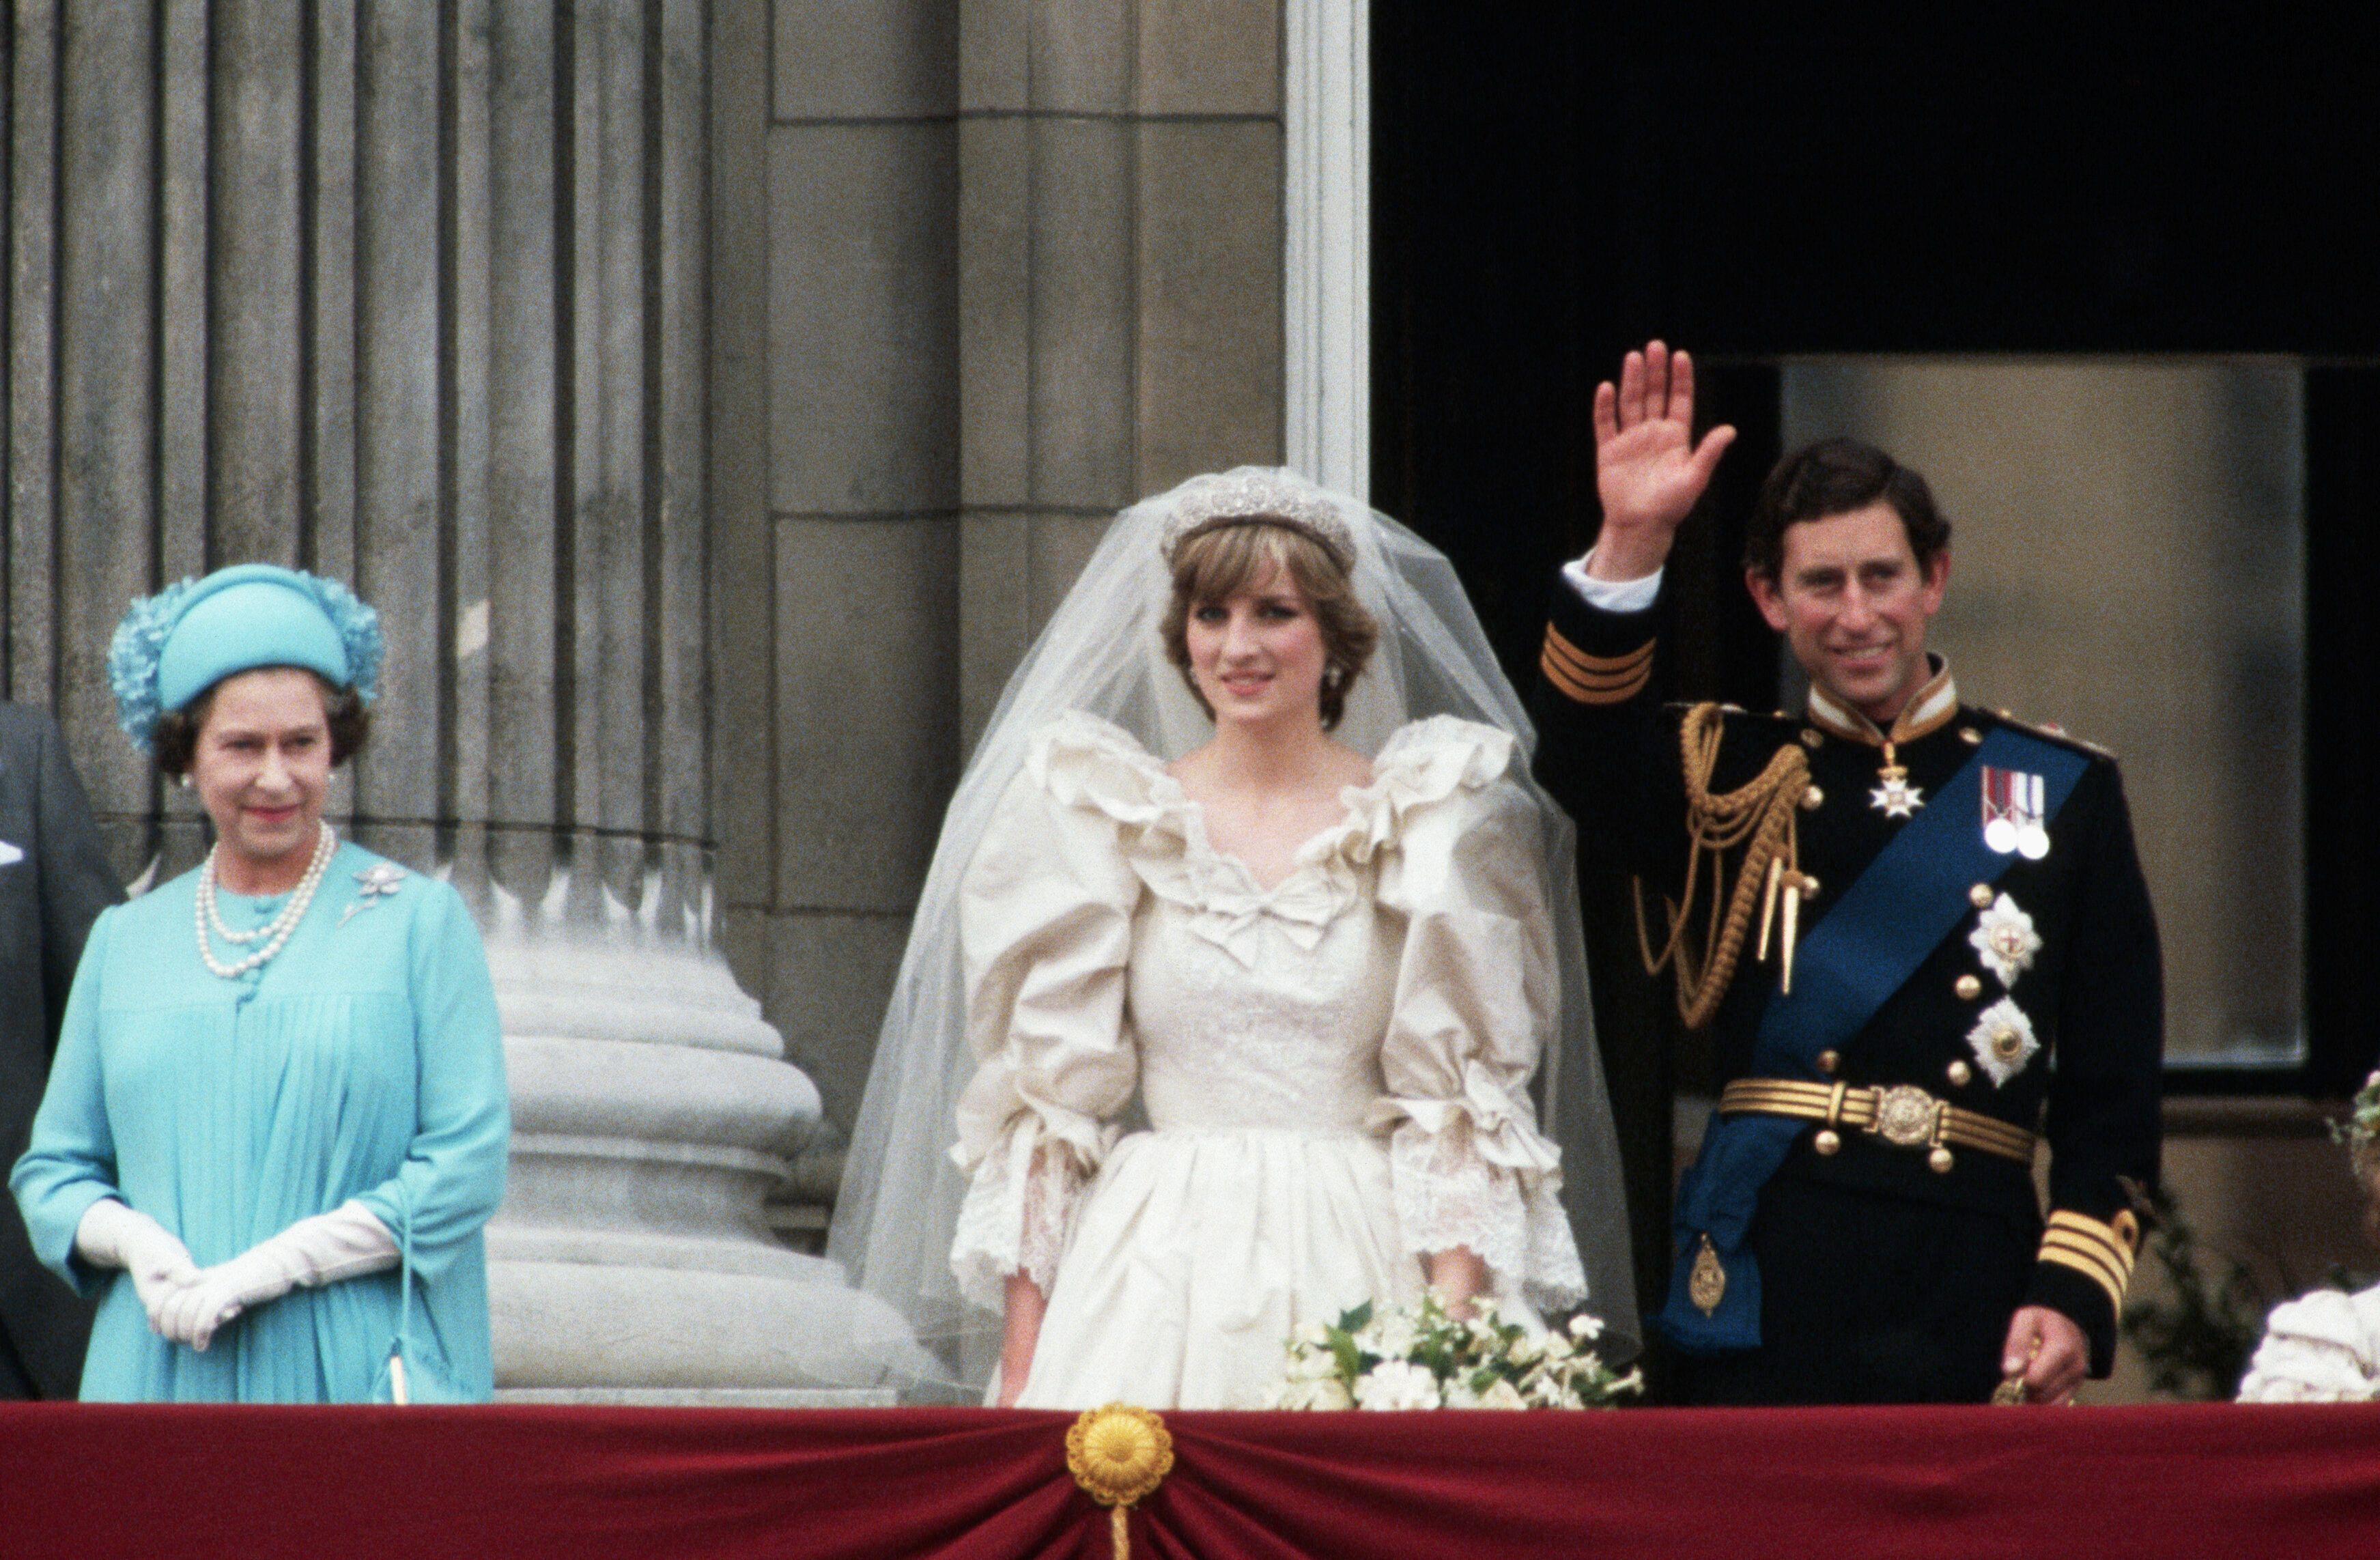 Charles And Diana Wedding.Why The Queen Hurried Along Charles And Diana S Wedding Photos